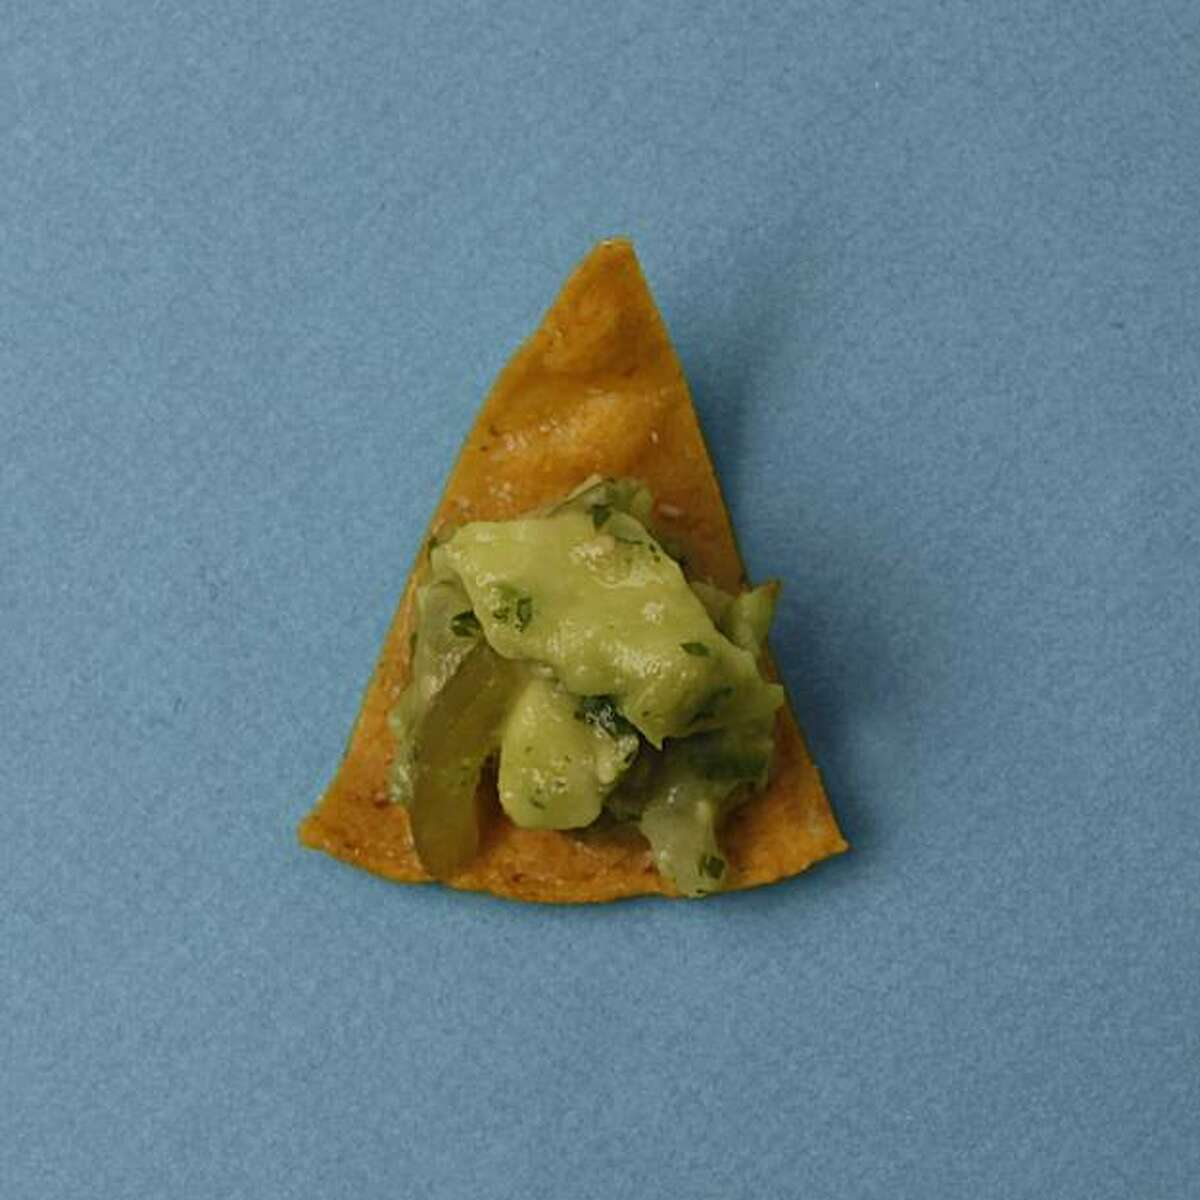 Homemade Tortilla Chips with Tomatillo Guacamole in San Francisco, Calif., on December 3, 2009. Food styled by Kalena Ross and Sarah Fritsche.